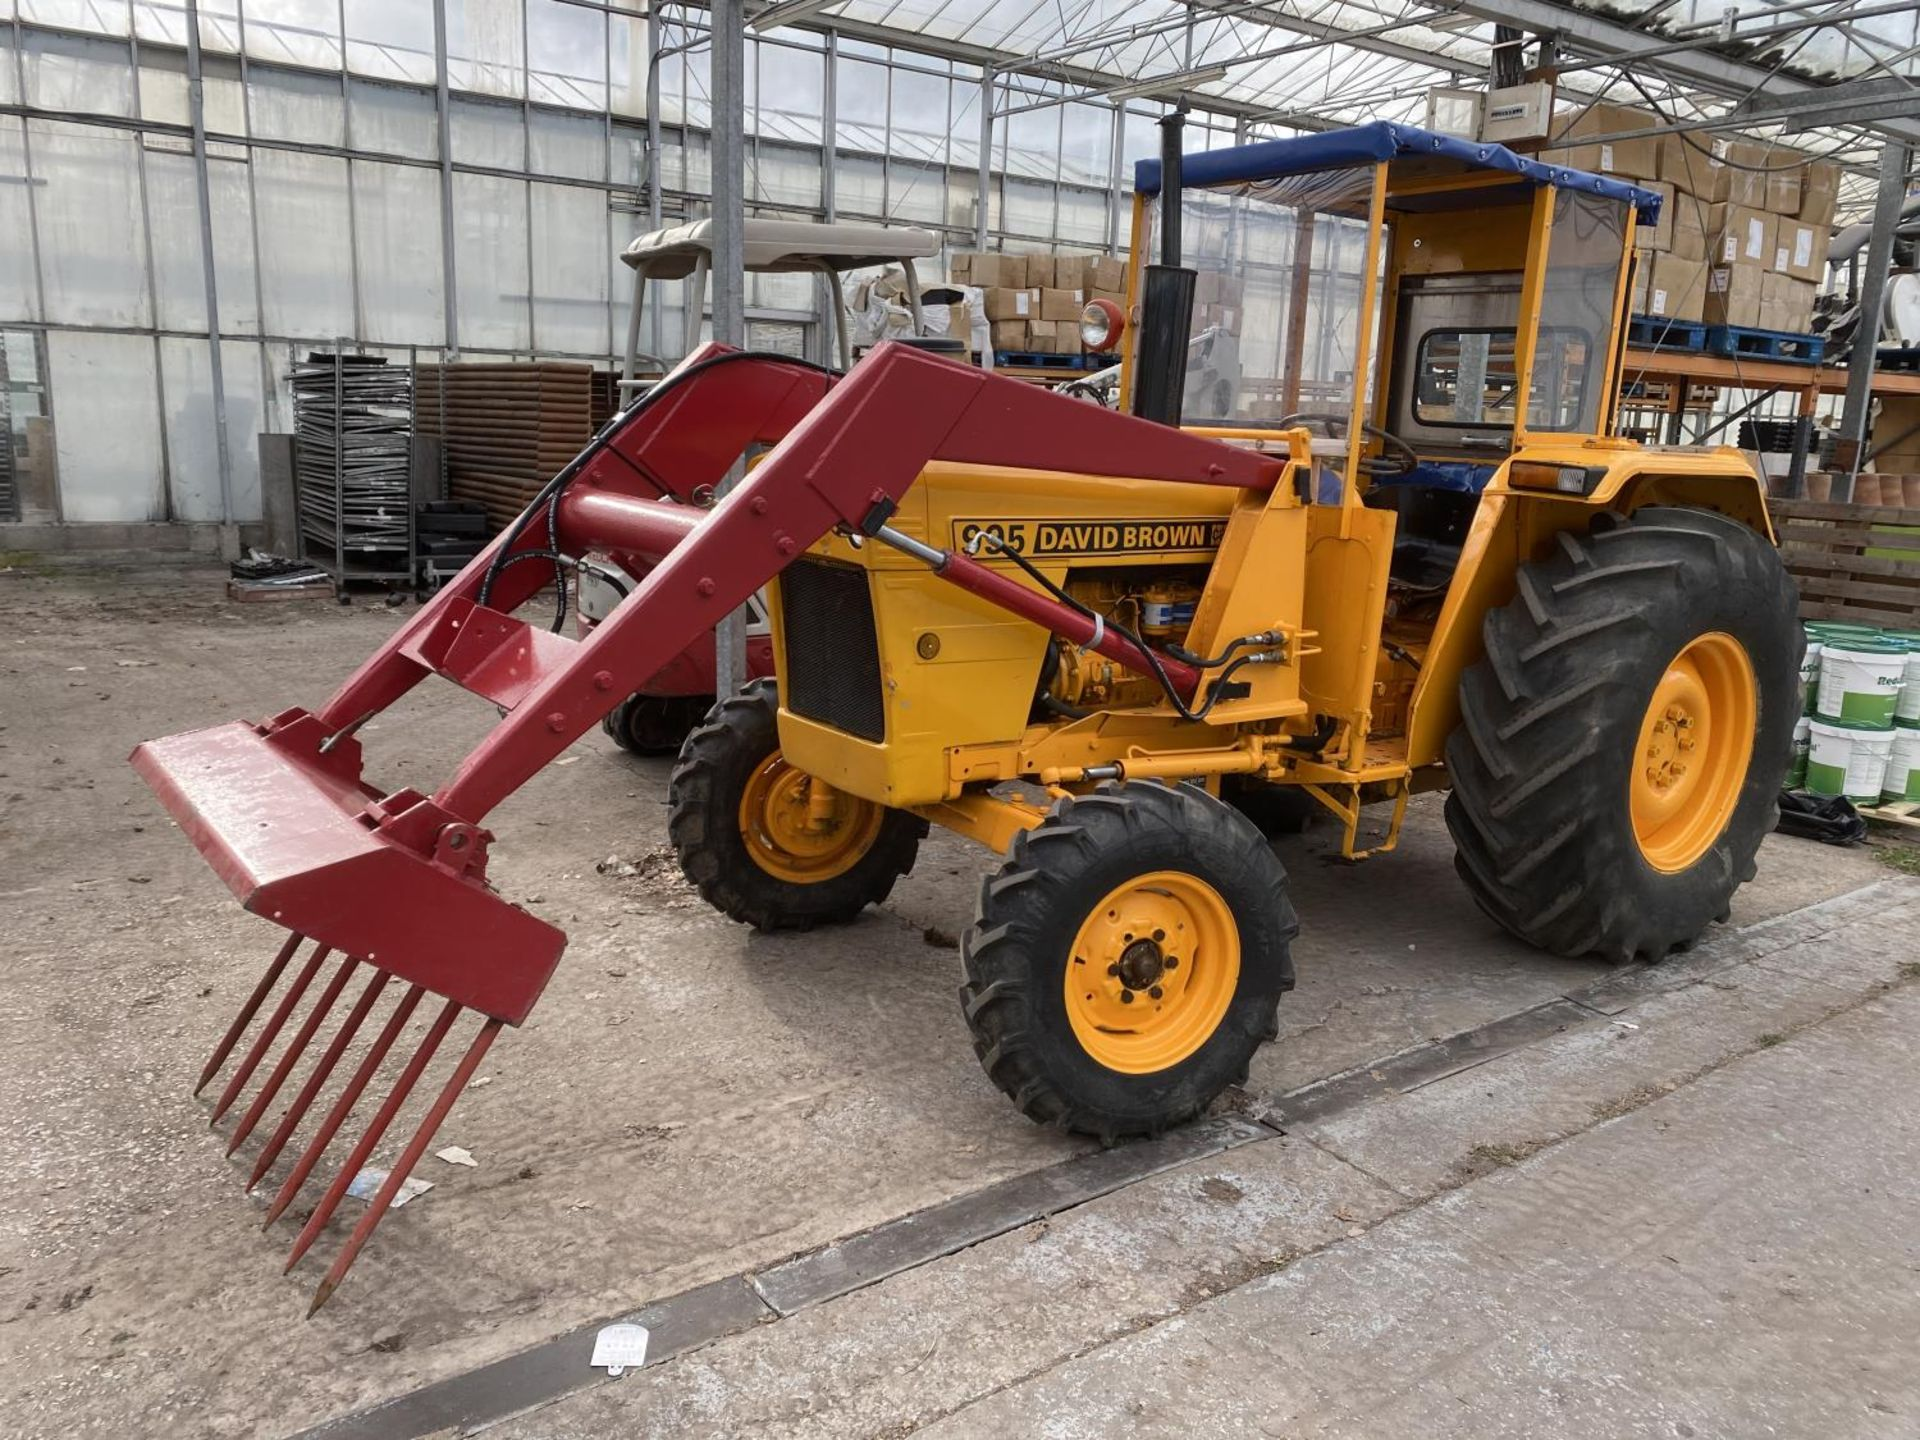 A DAVID BROWN 995 TRACTOR WITH FORE END LOADER AND MANURE FORK 3779 HOURS